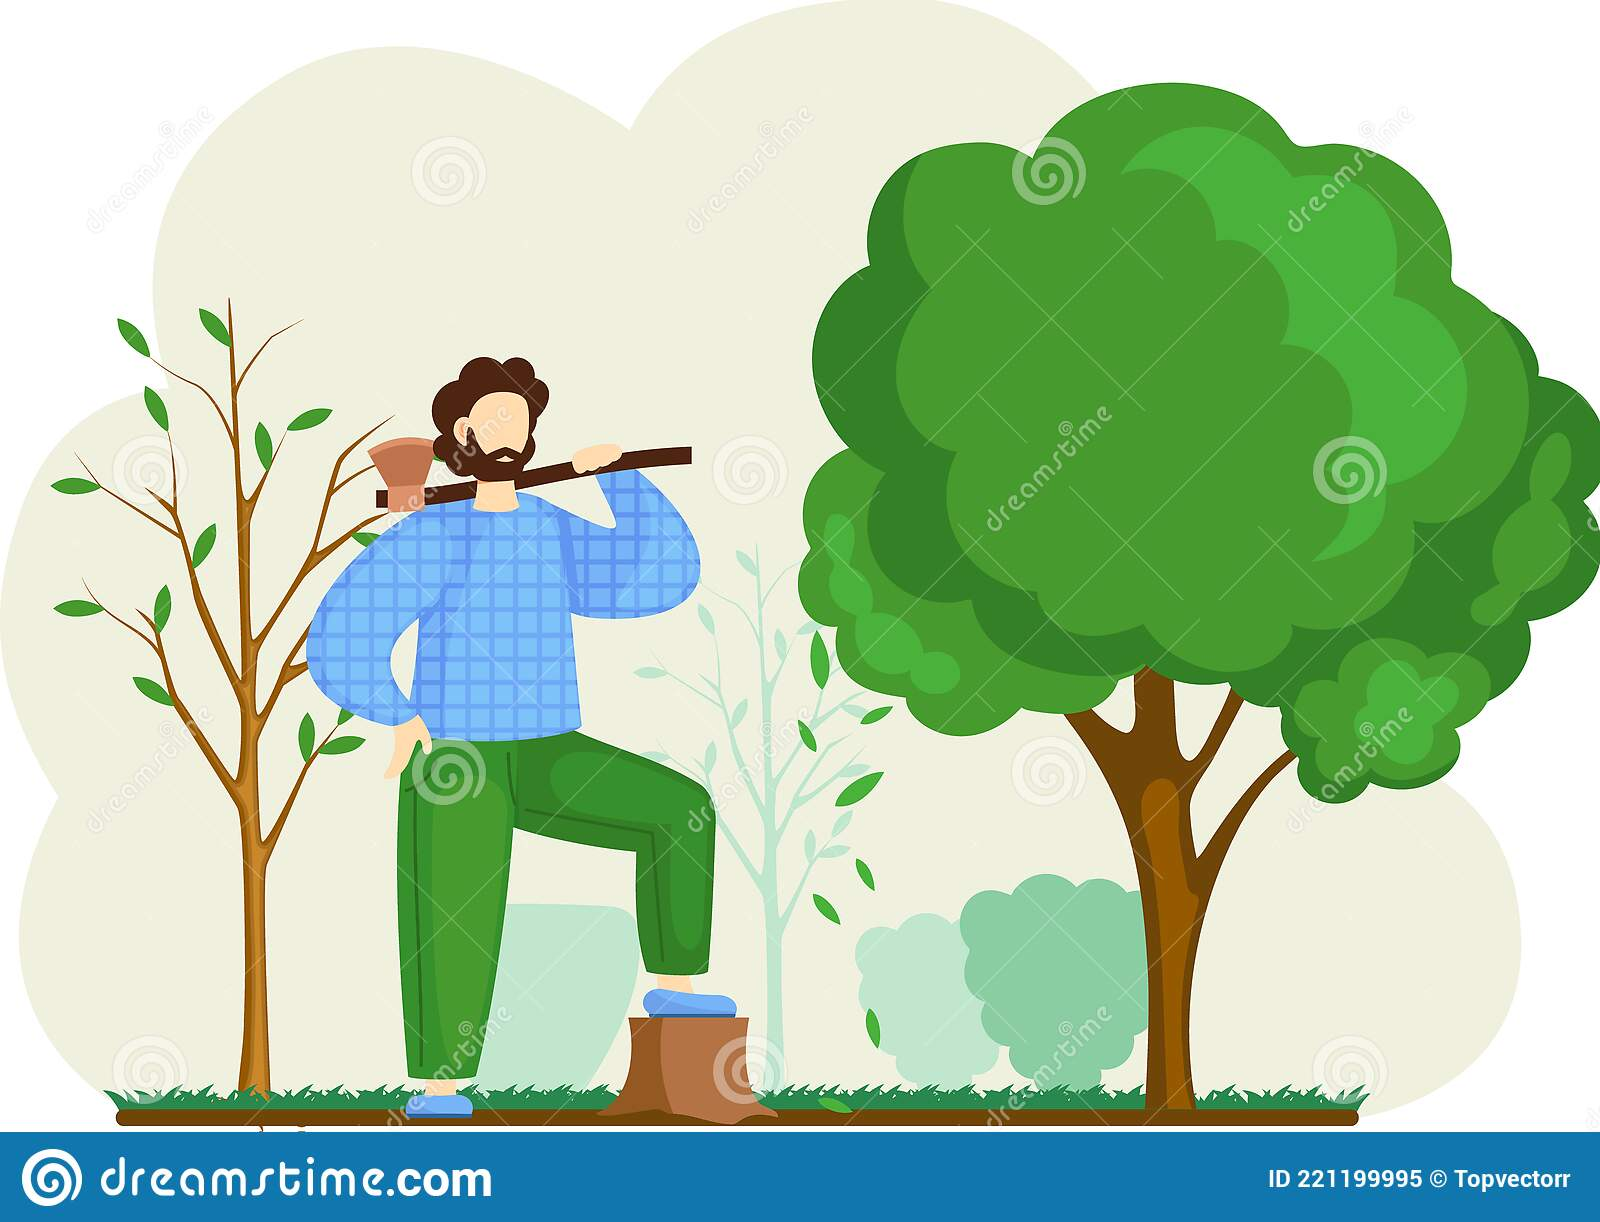 Forest Cutting Stock Illustrations 2 873 Forest Cutting Stock Illustrations Vectors Clipart Dreamstime